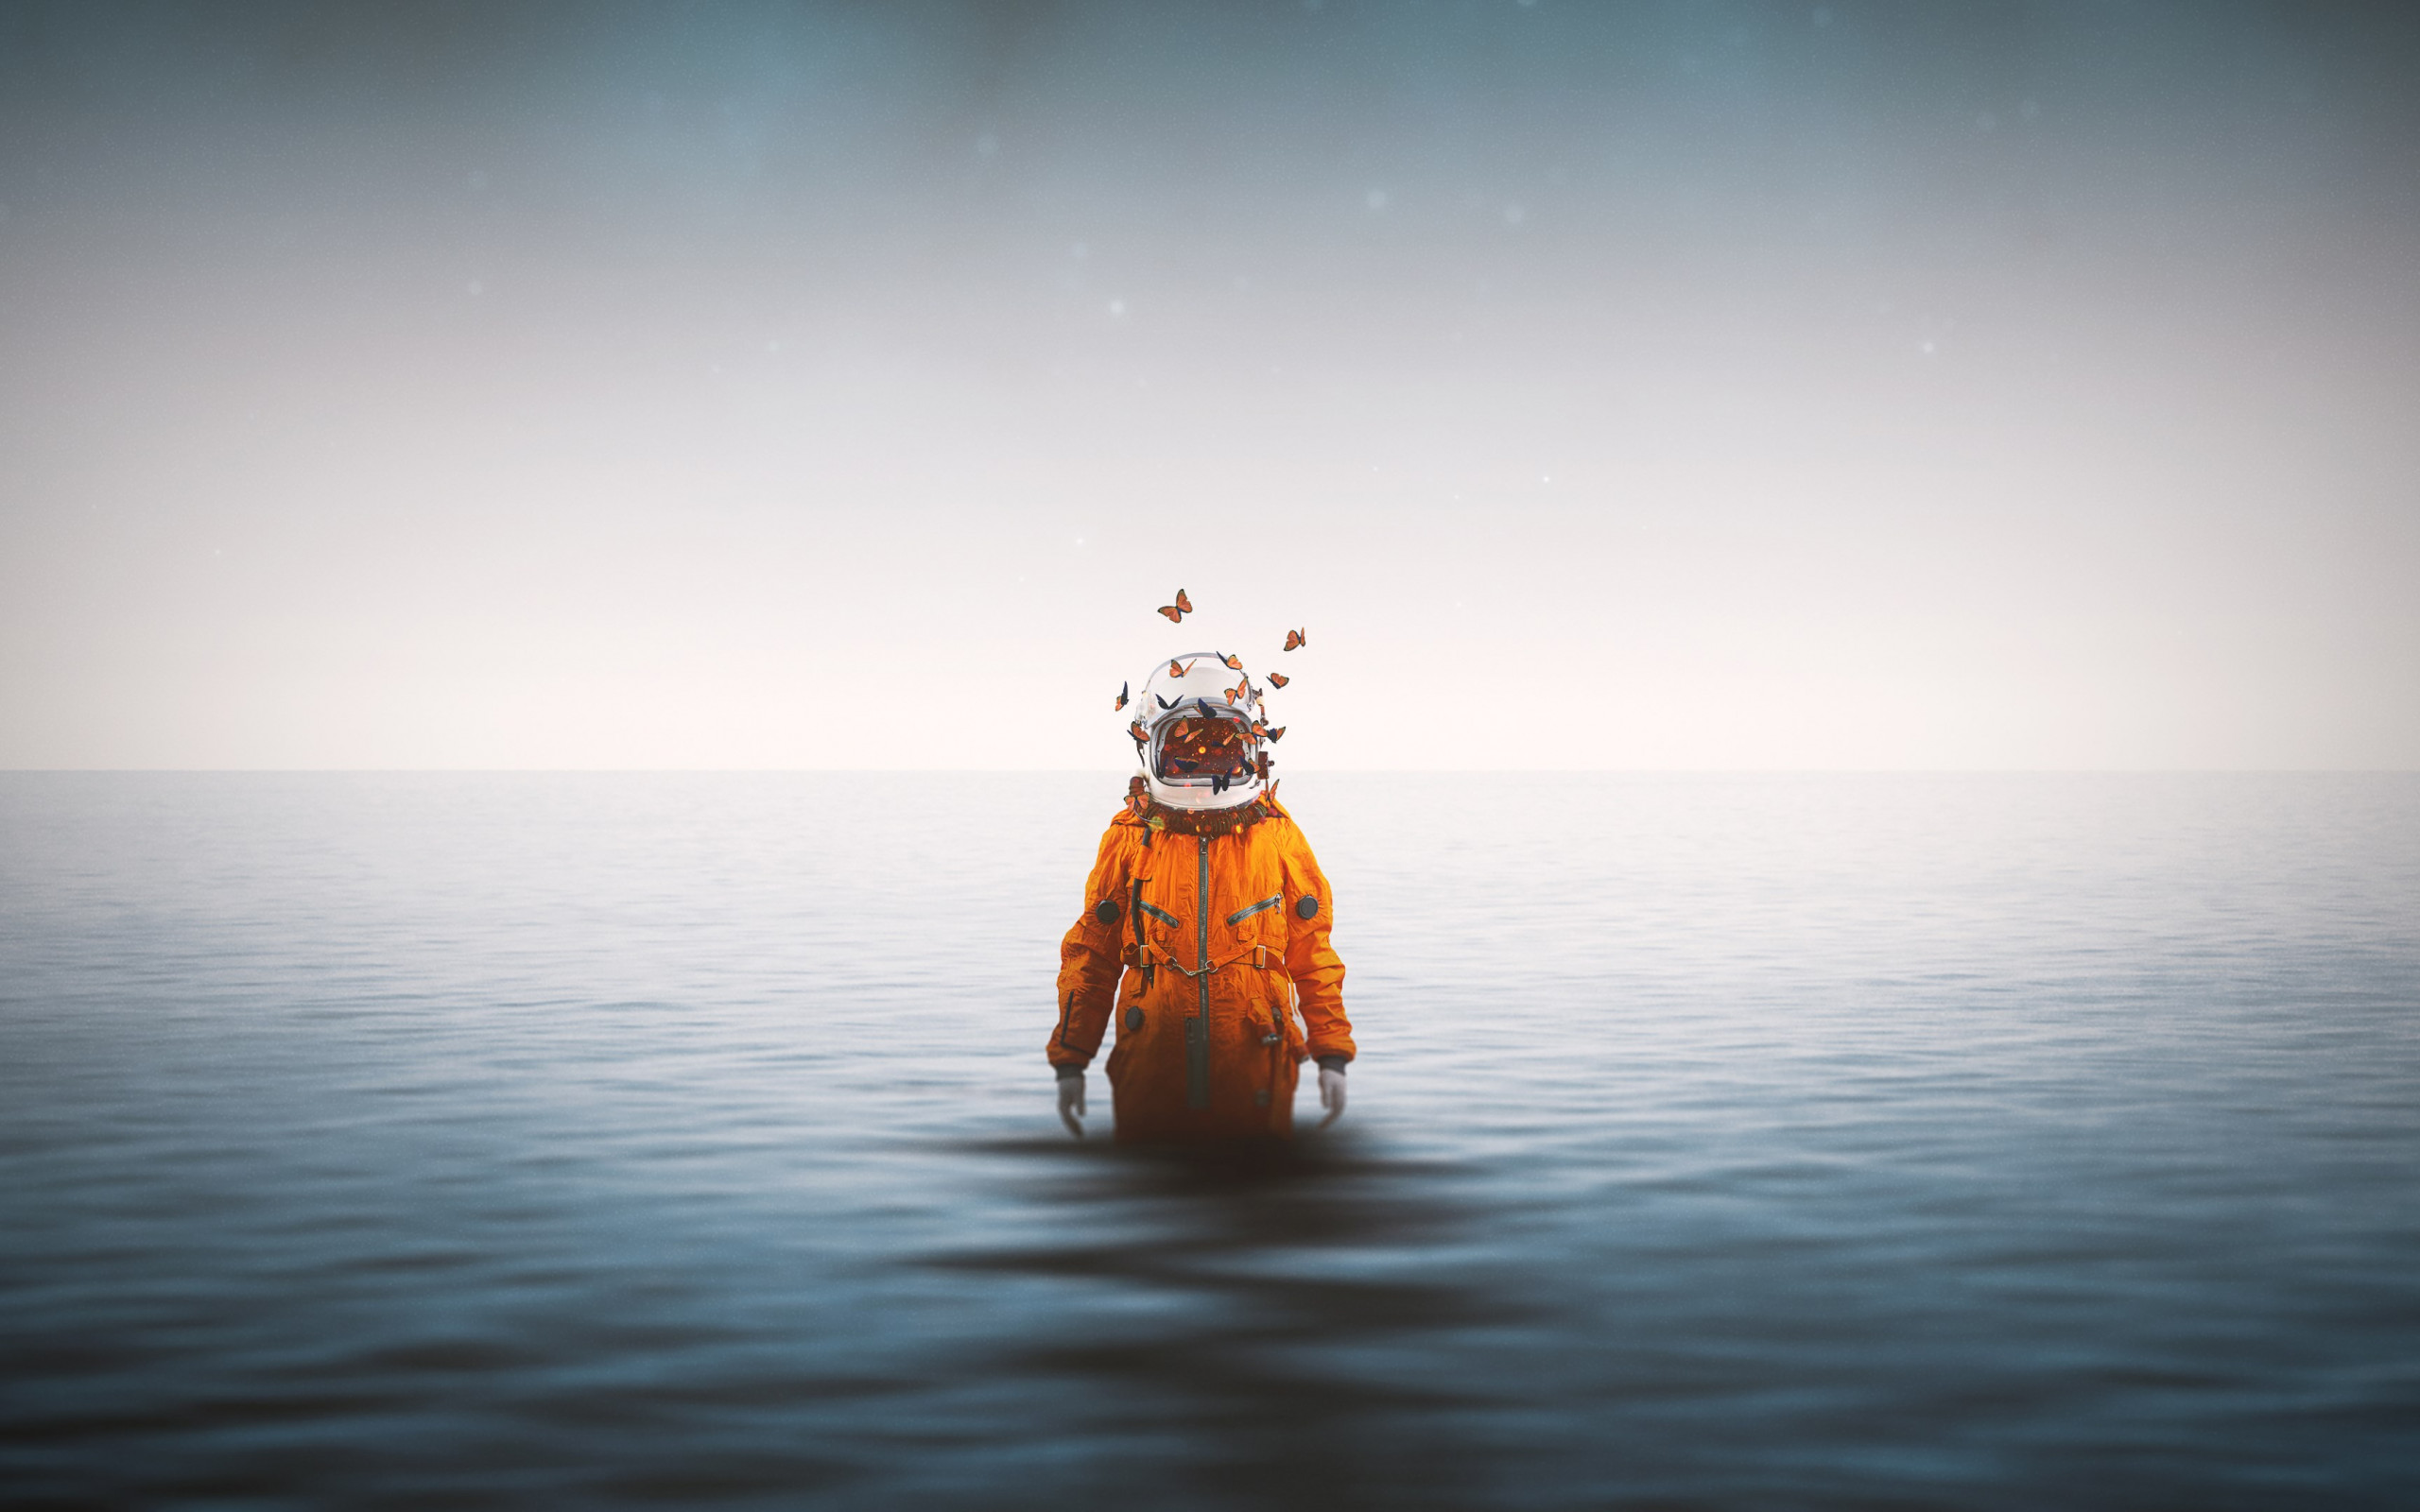 Lonely astronaut wallpaper 2560x1600